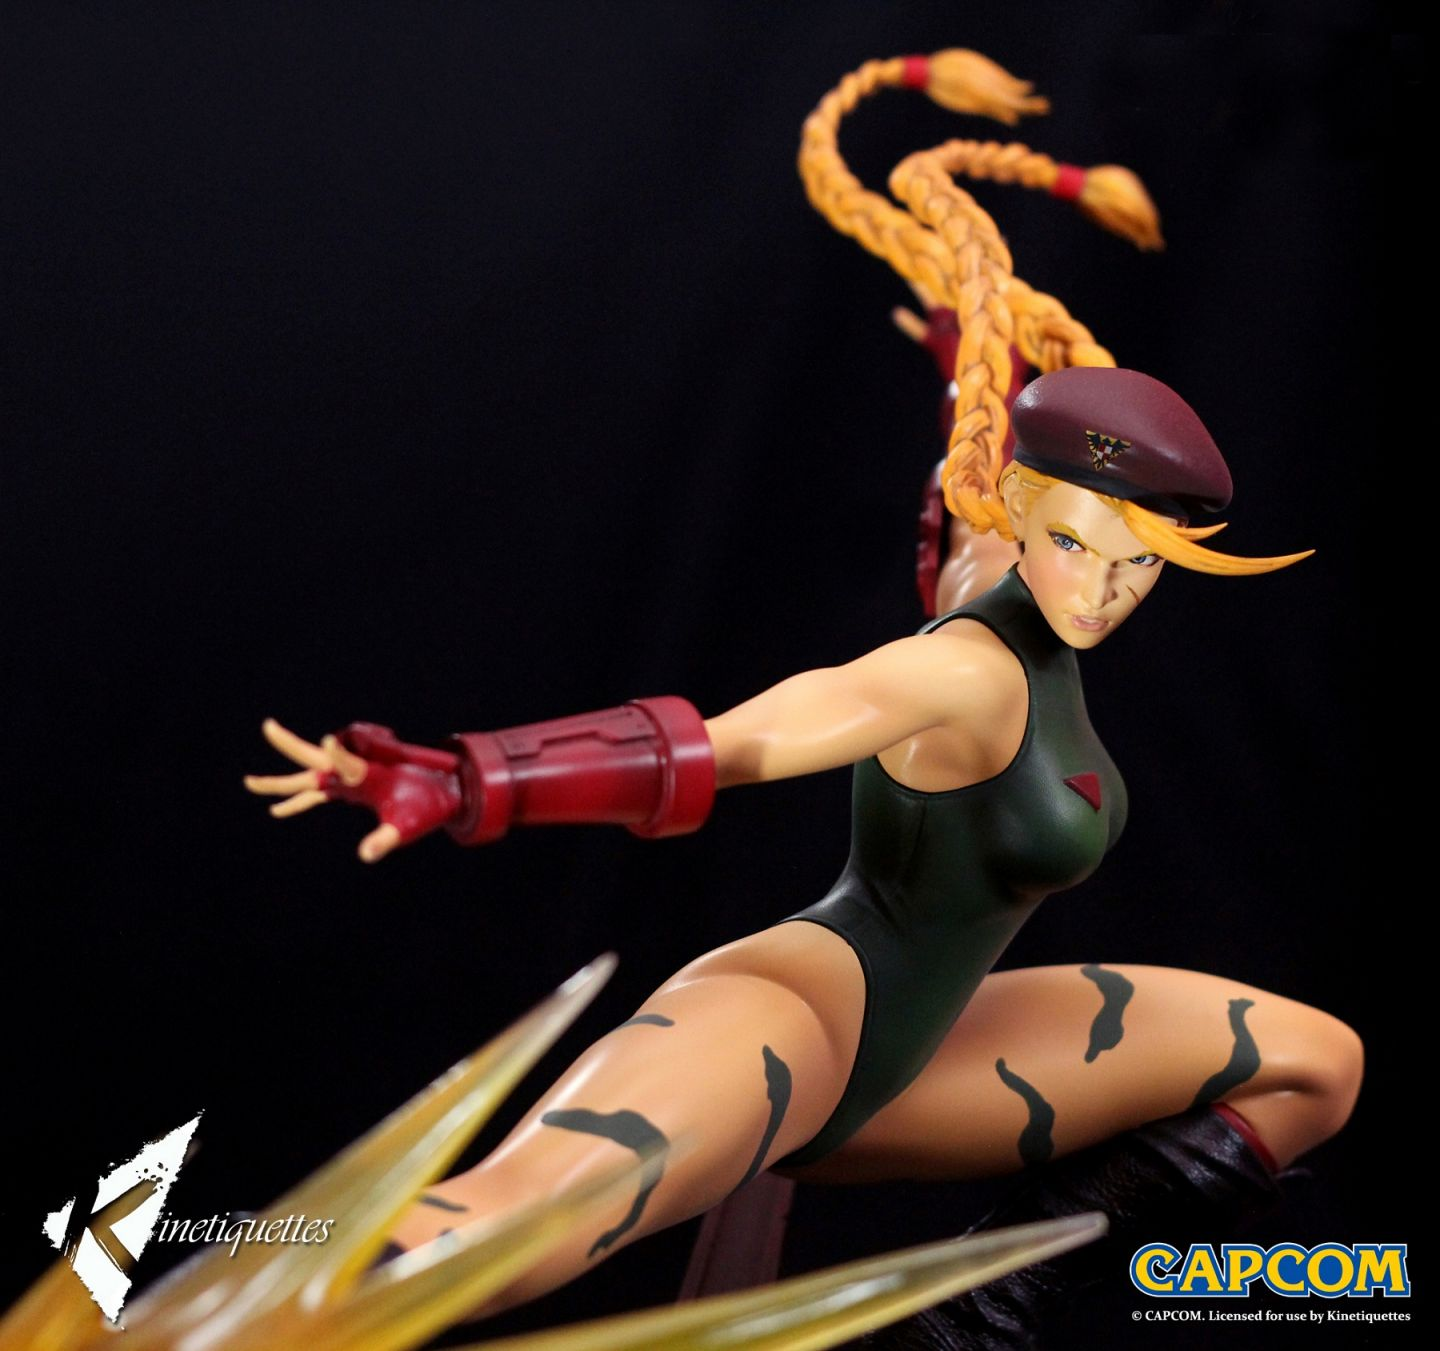 Kinetiquettes - Femmes Fatale - Ultra Street Fighter IV - Cammy White 1/6 Scale Diorama